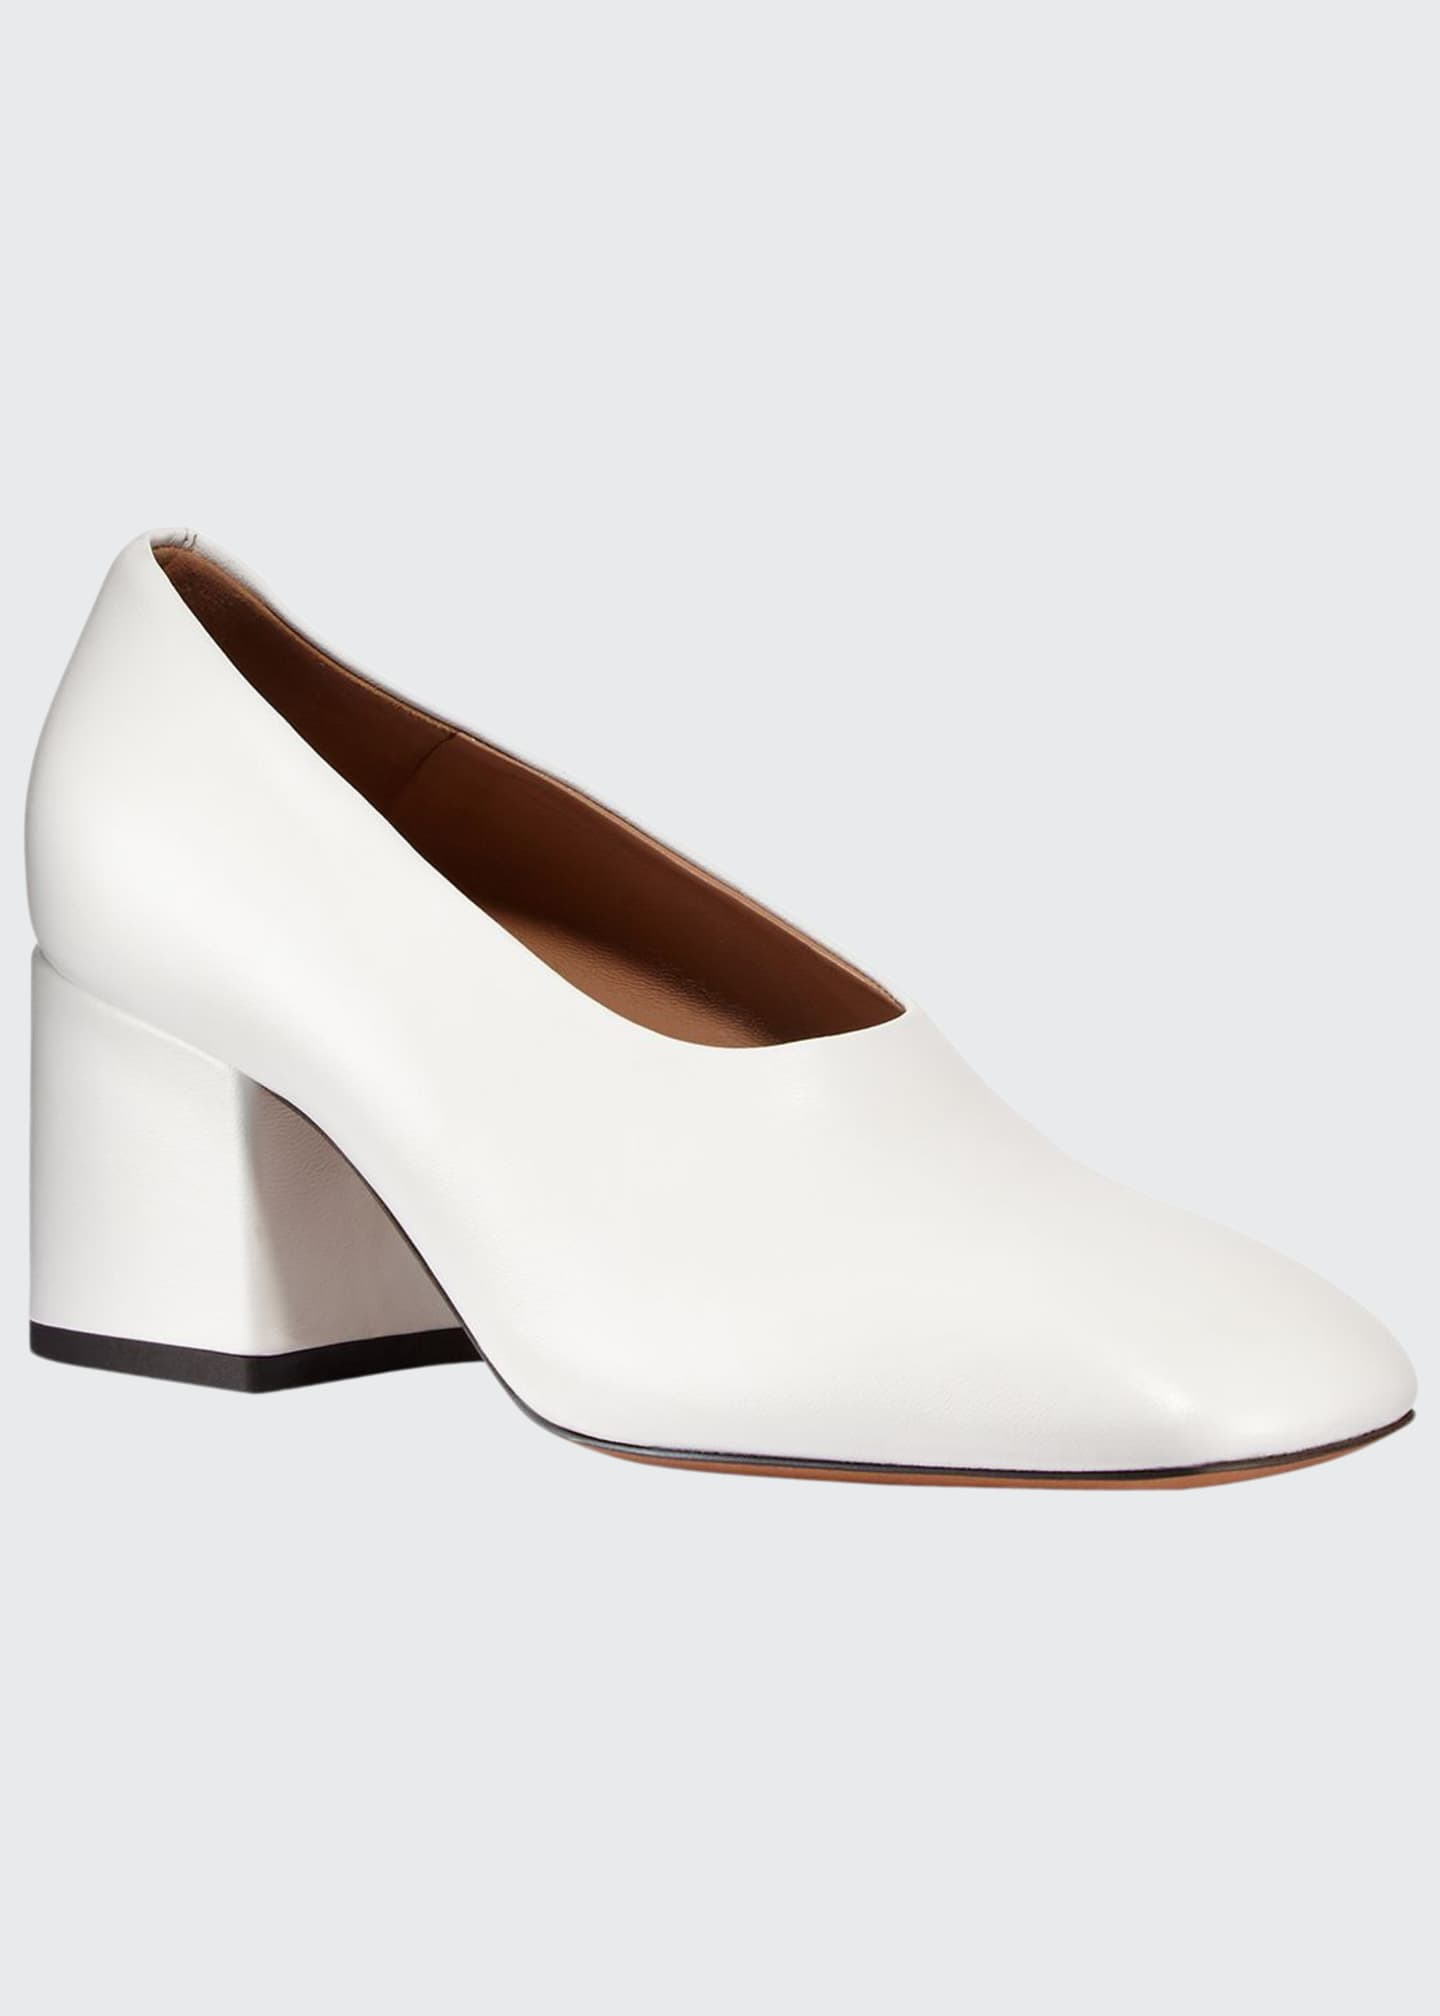 Marni Square-Toe Slip-On Pumps